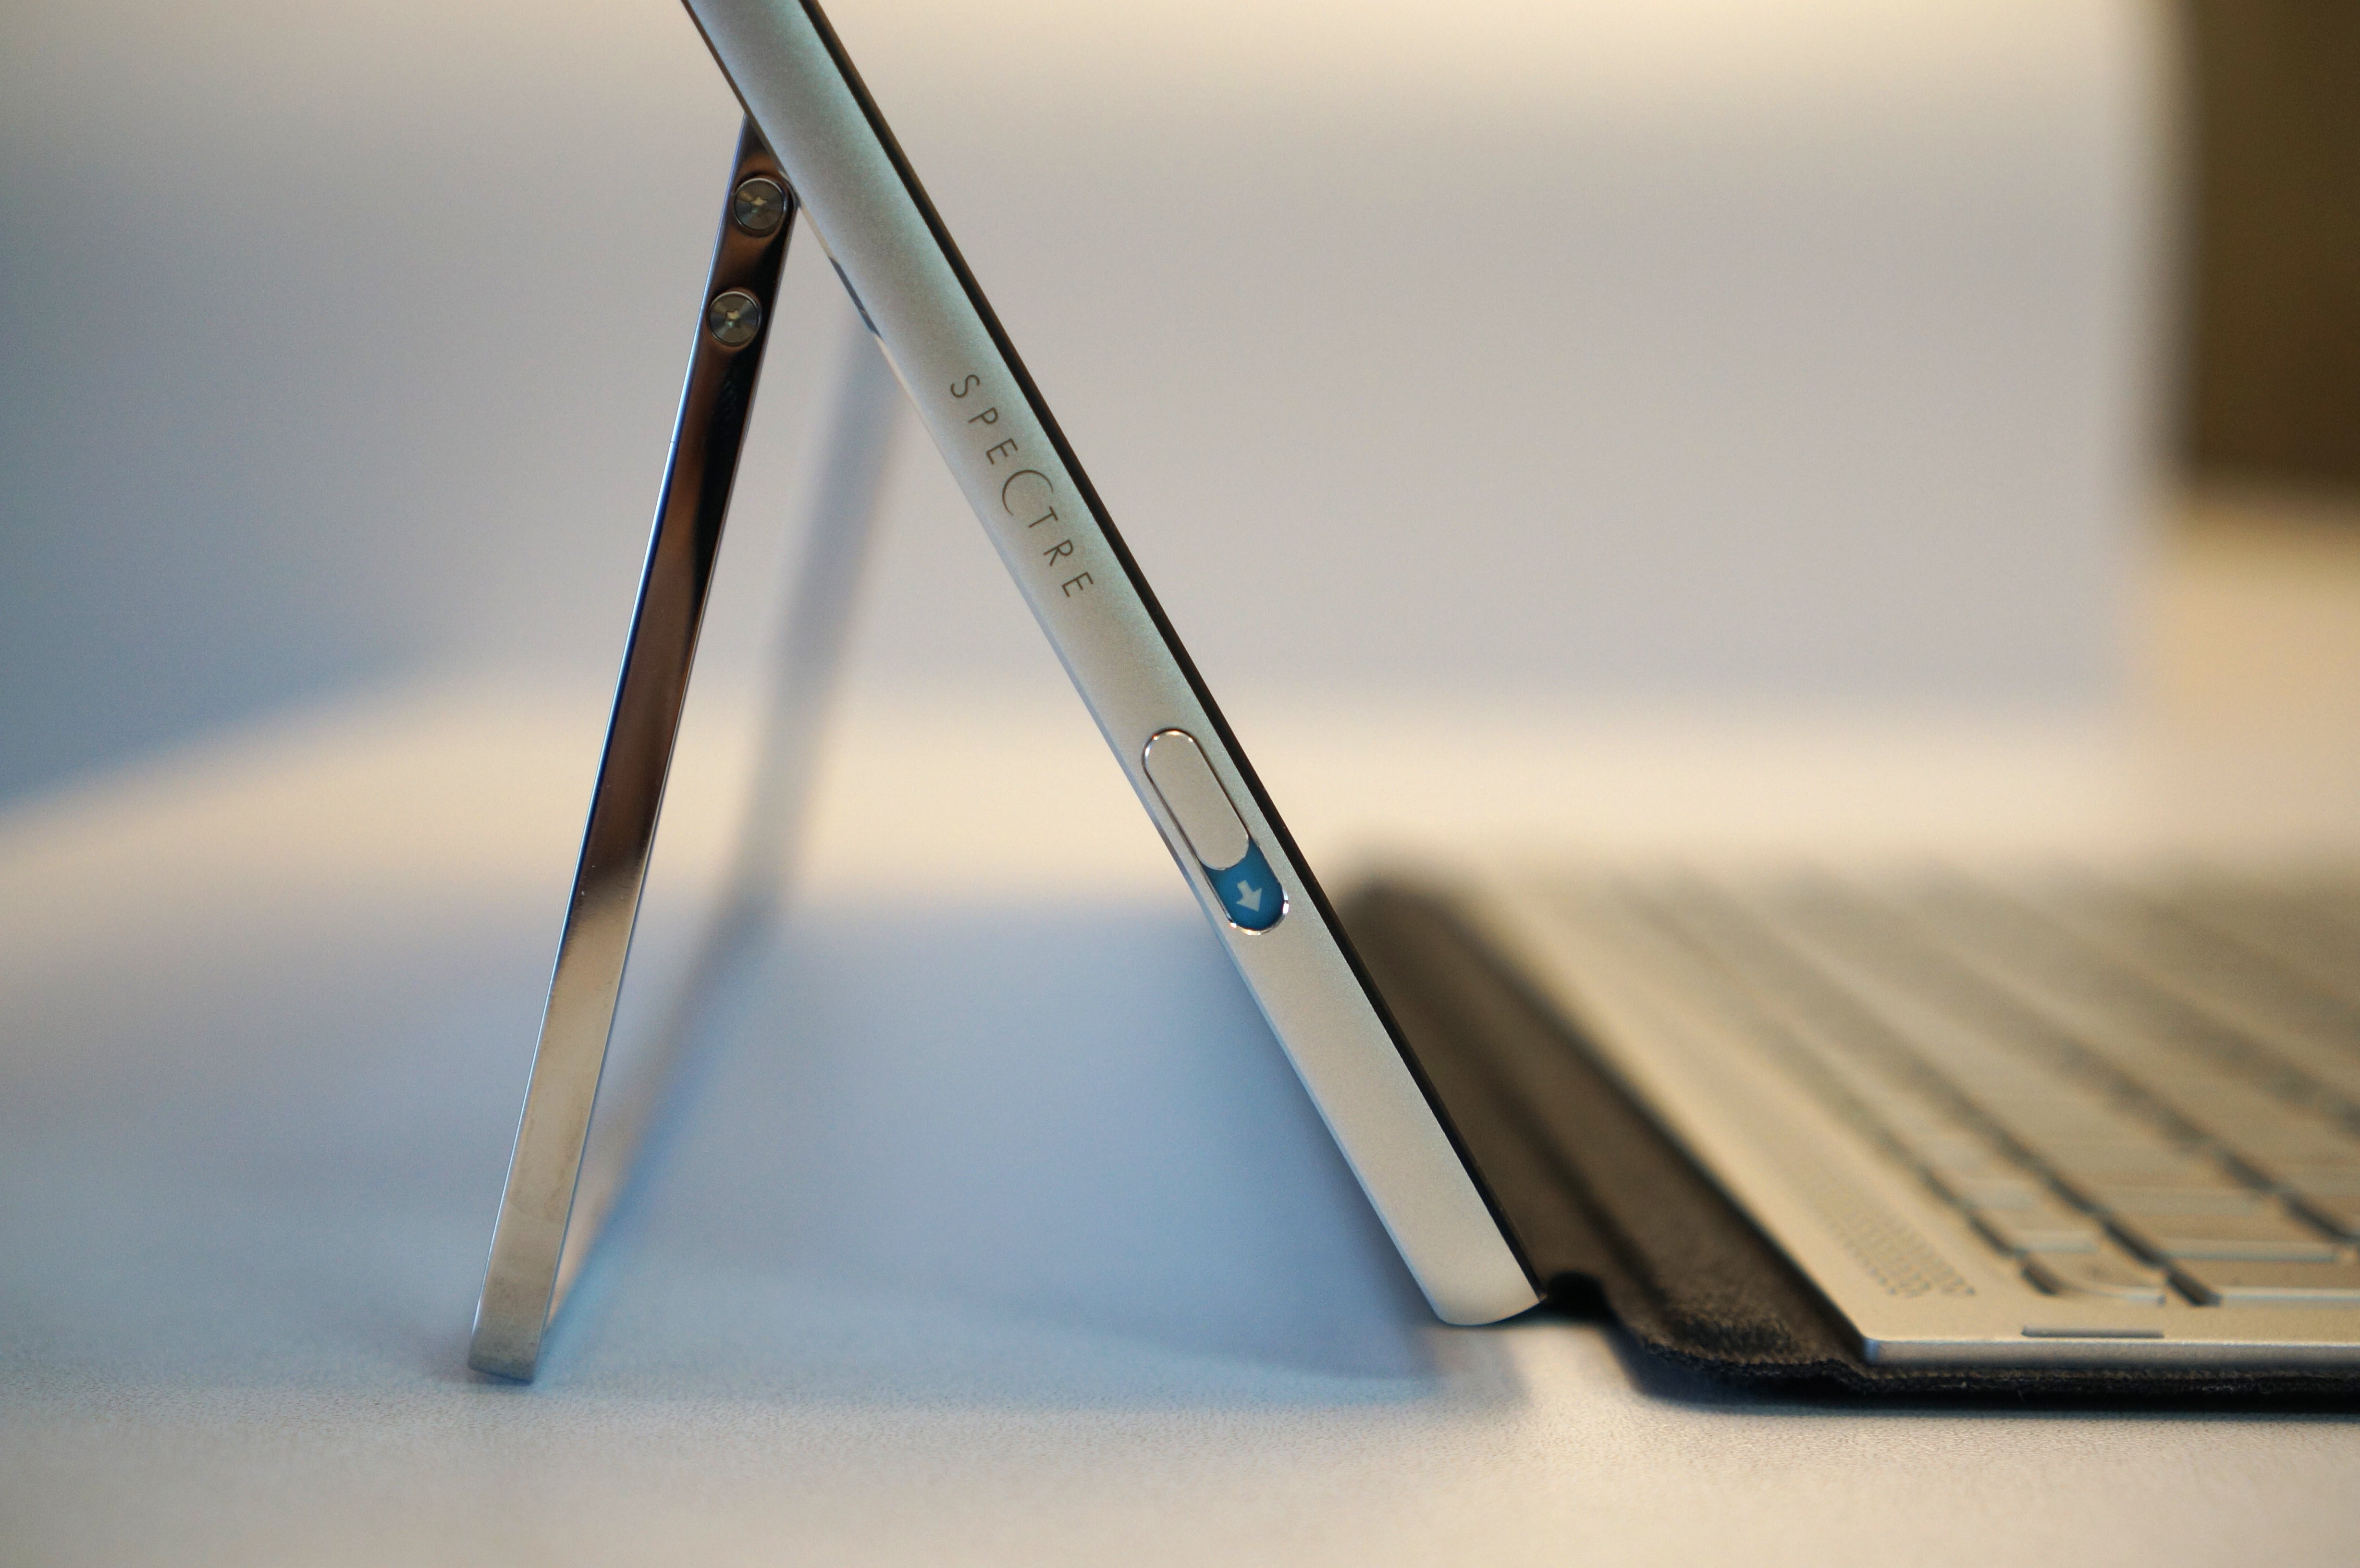 hp spectre x2 review a surface clone for a lot less cash pcworld. Black Bedroom Furniture Sets. Home Design Ideas